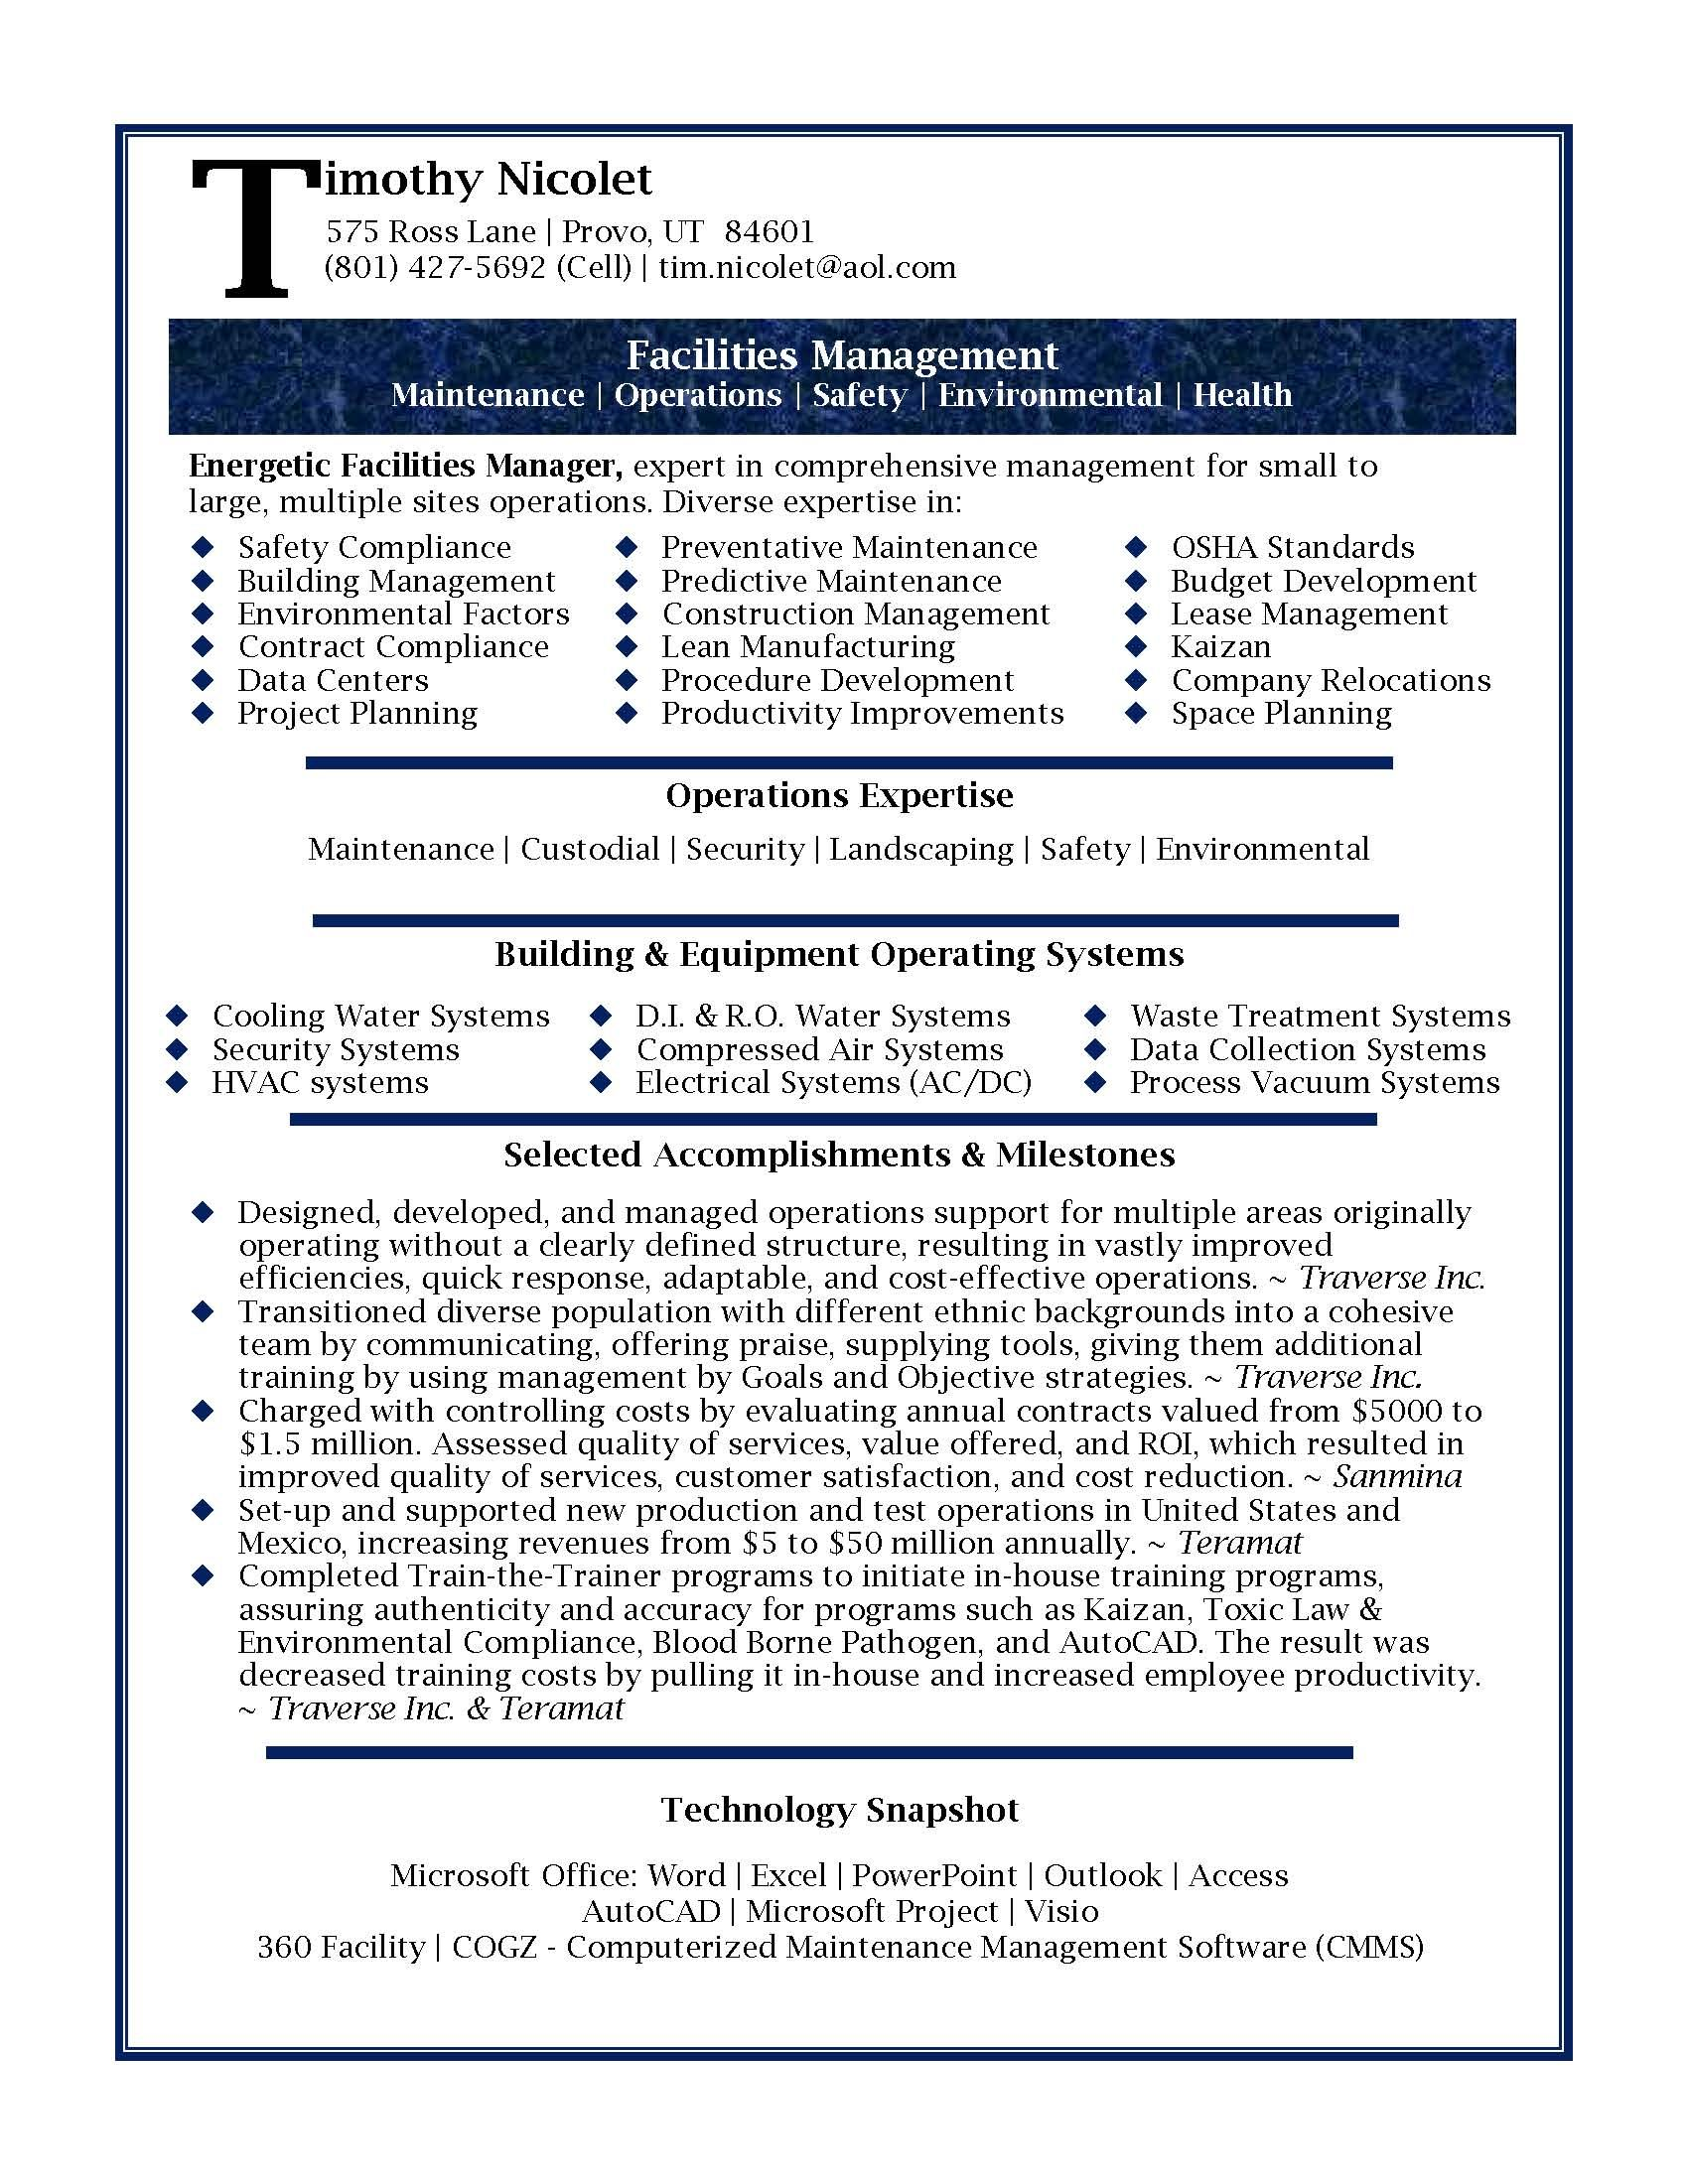 resume samples professional facilities manager resume sample - Sample Access Management Resume